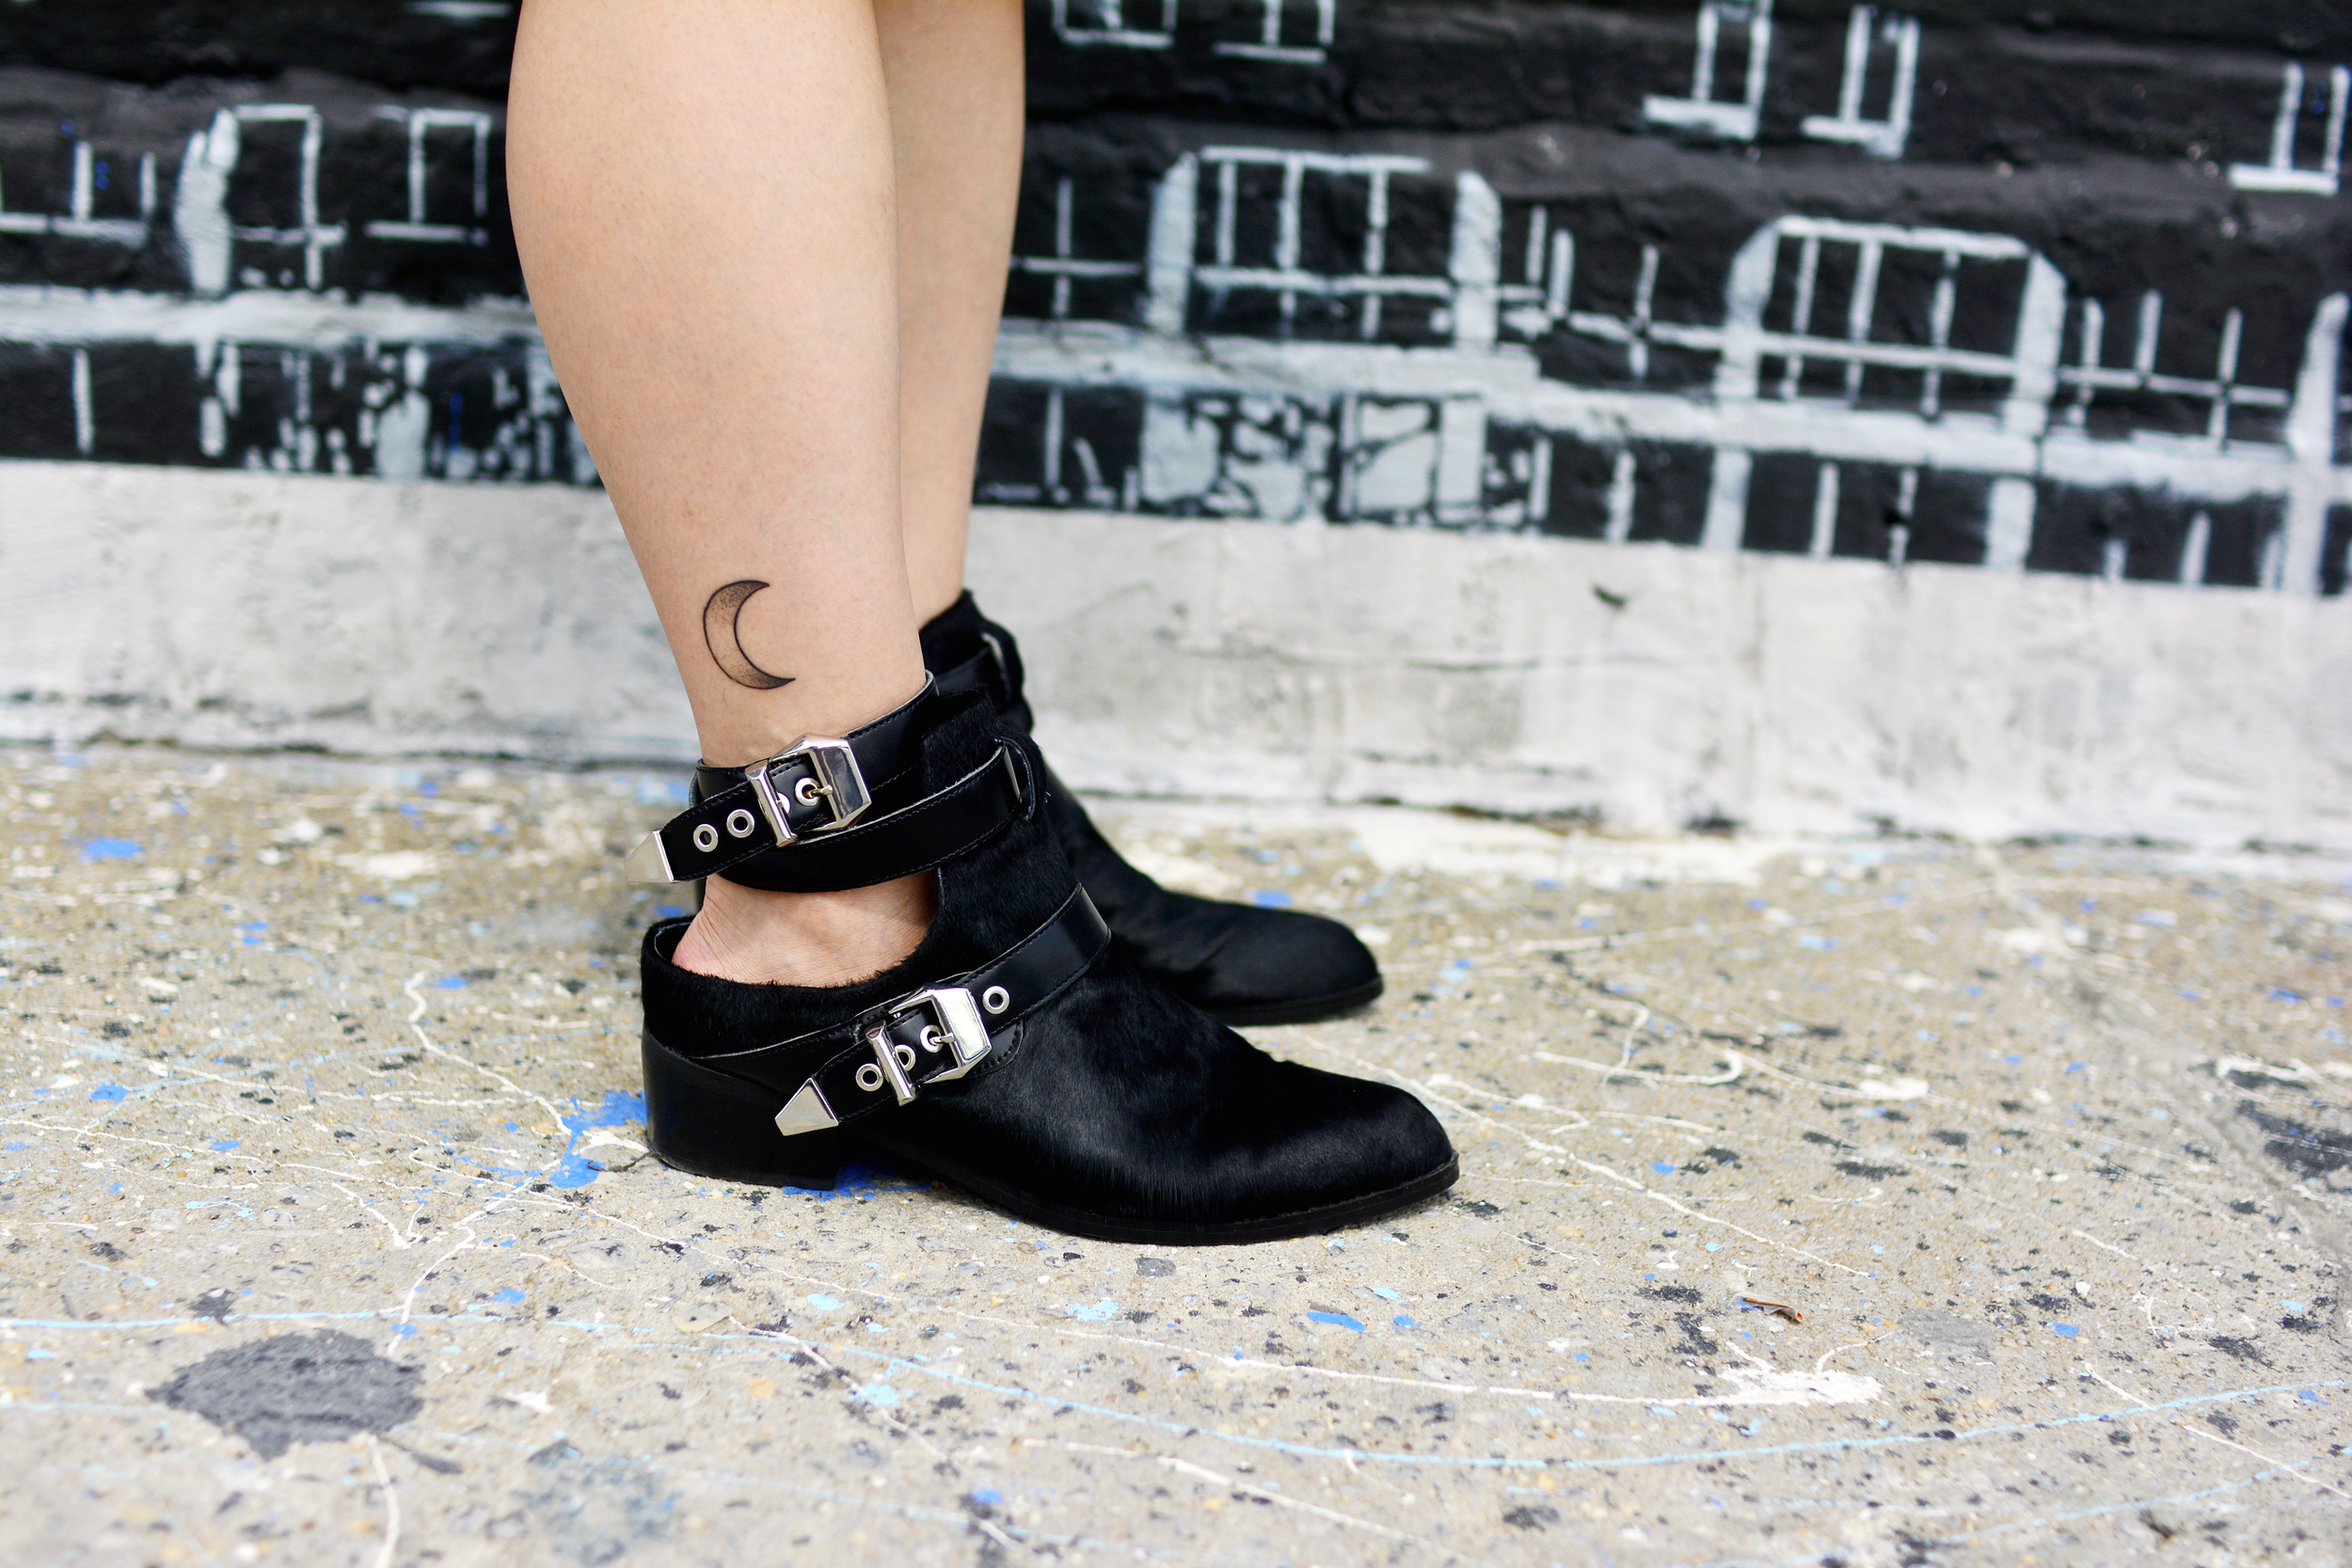 Discovering graffiti at the Welling Mural Court Project in Queens, NYC with a moon print dress, Sol Sana cut-out ankle boots and crescent moon tattoo